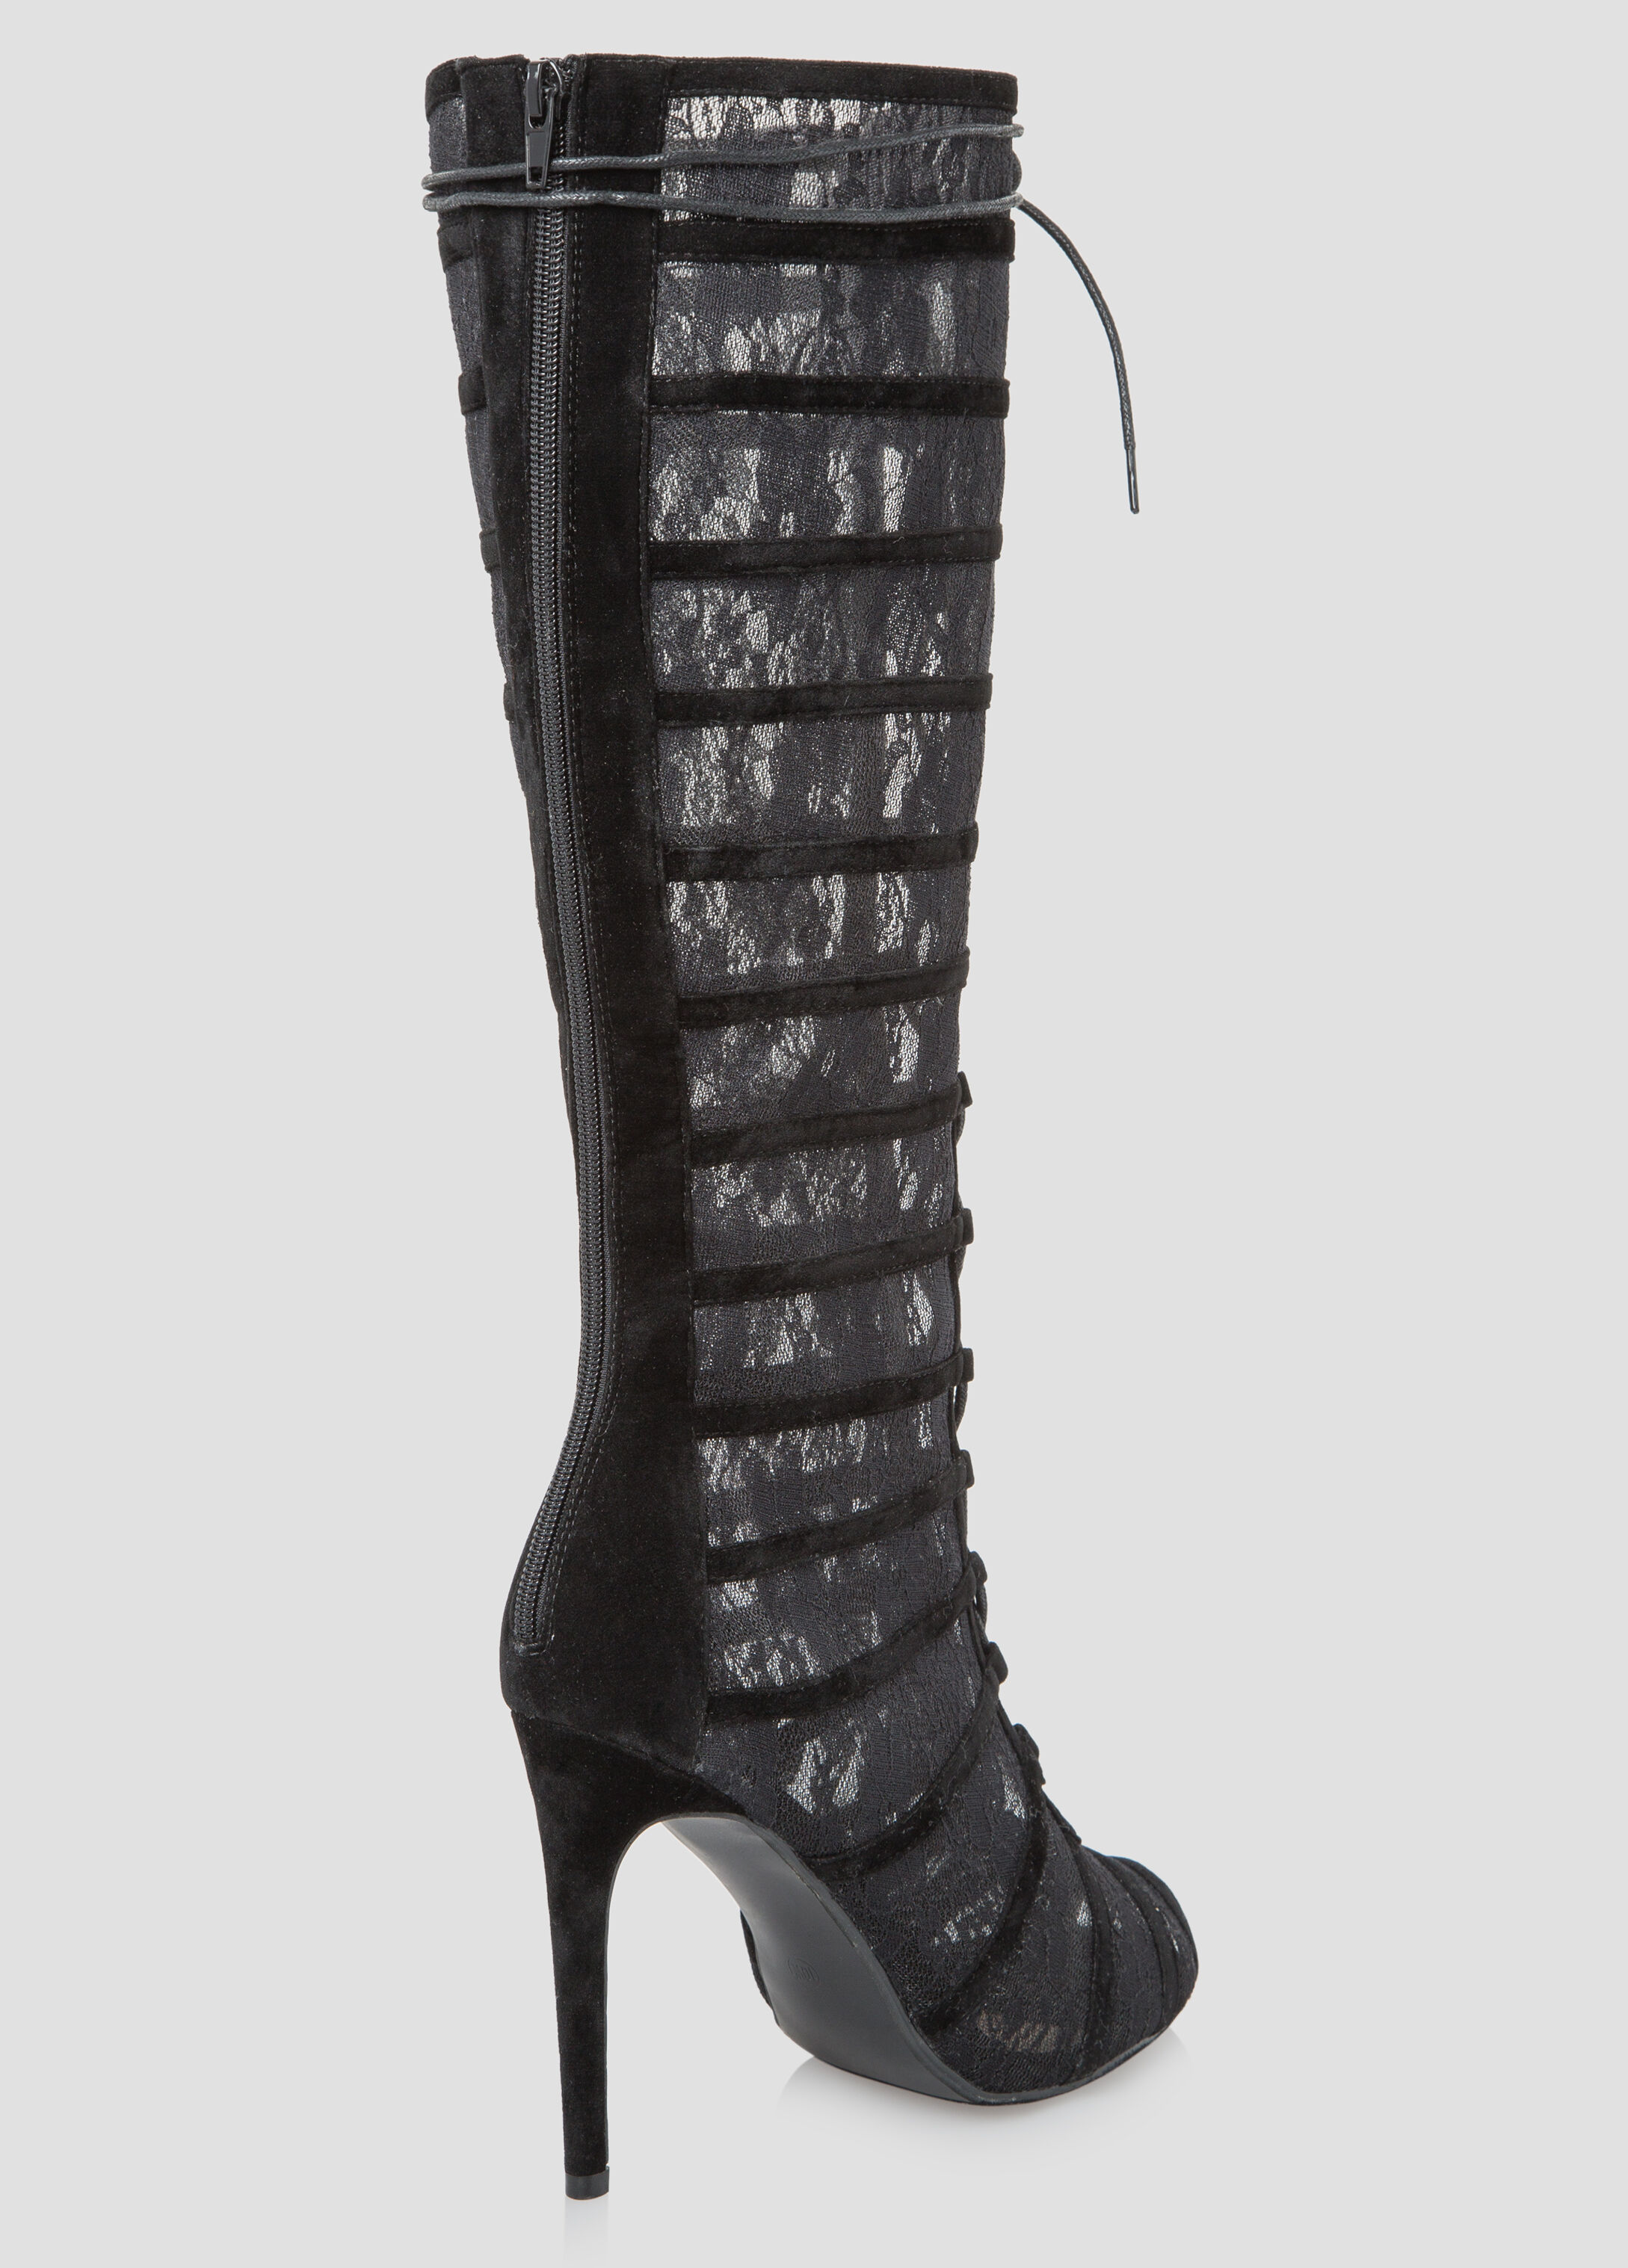 lace high heel boots-plus size shoes-ashley stewart-068-victoria